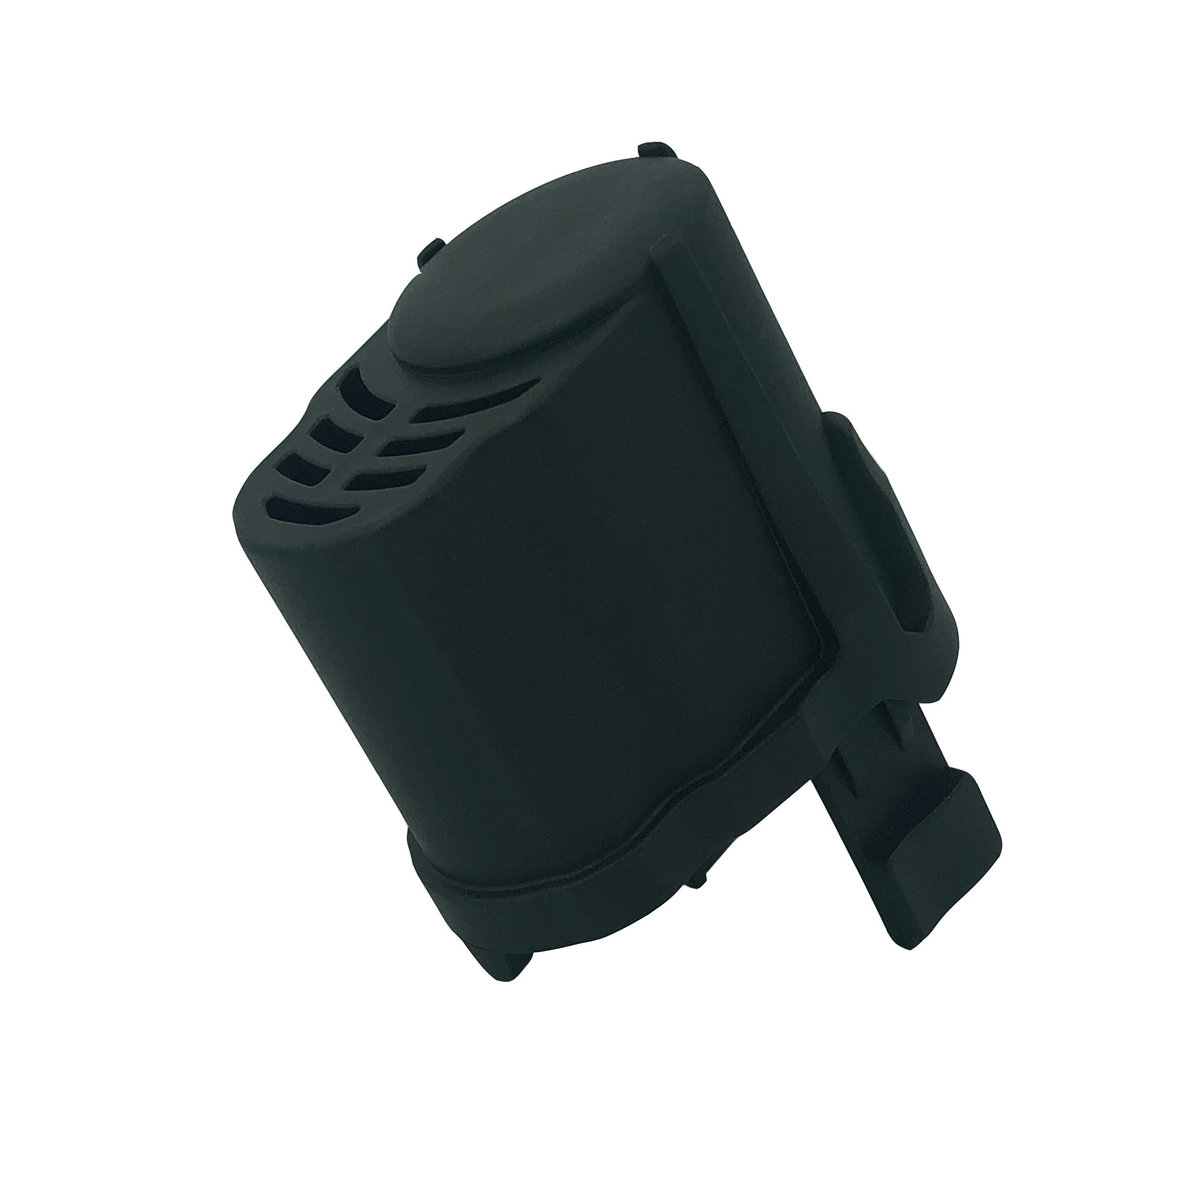 View larger image of Valken ASL+ PDW Stock Battery Cover